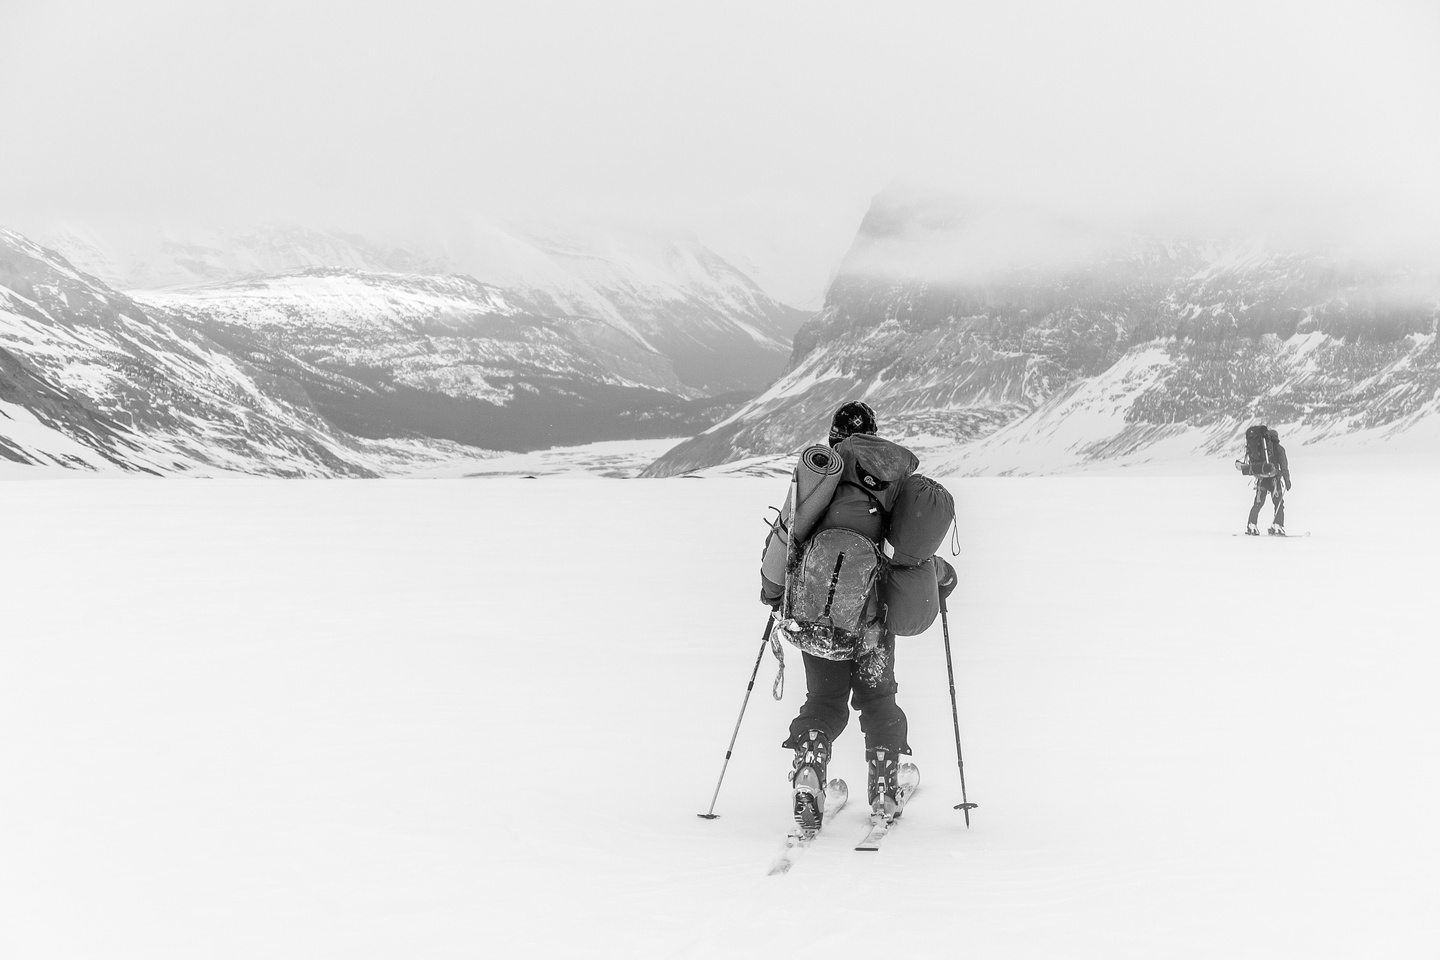 Slowly skiing under the cloud cap.